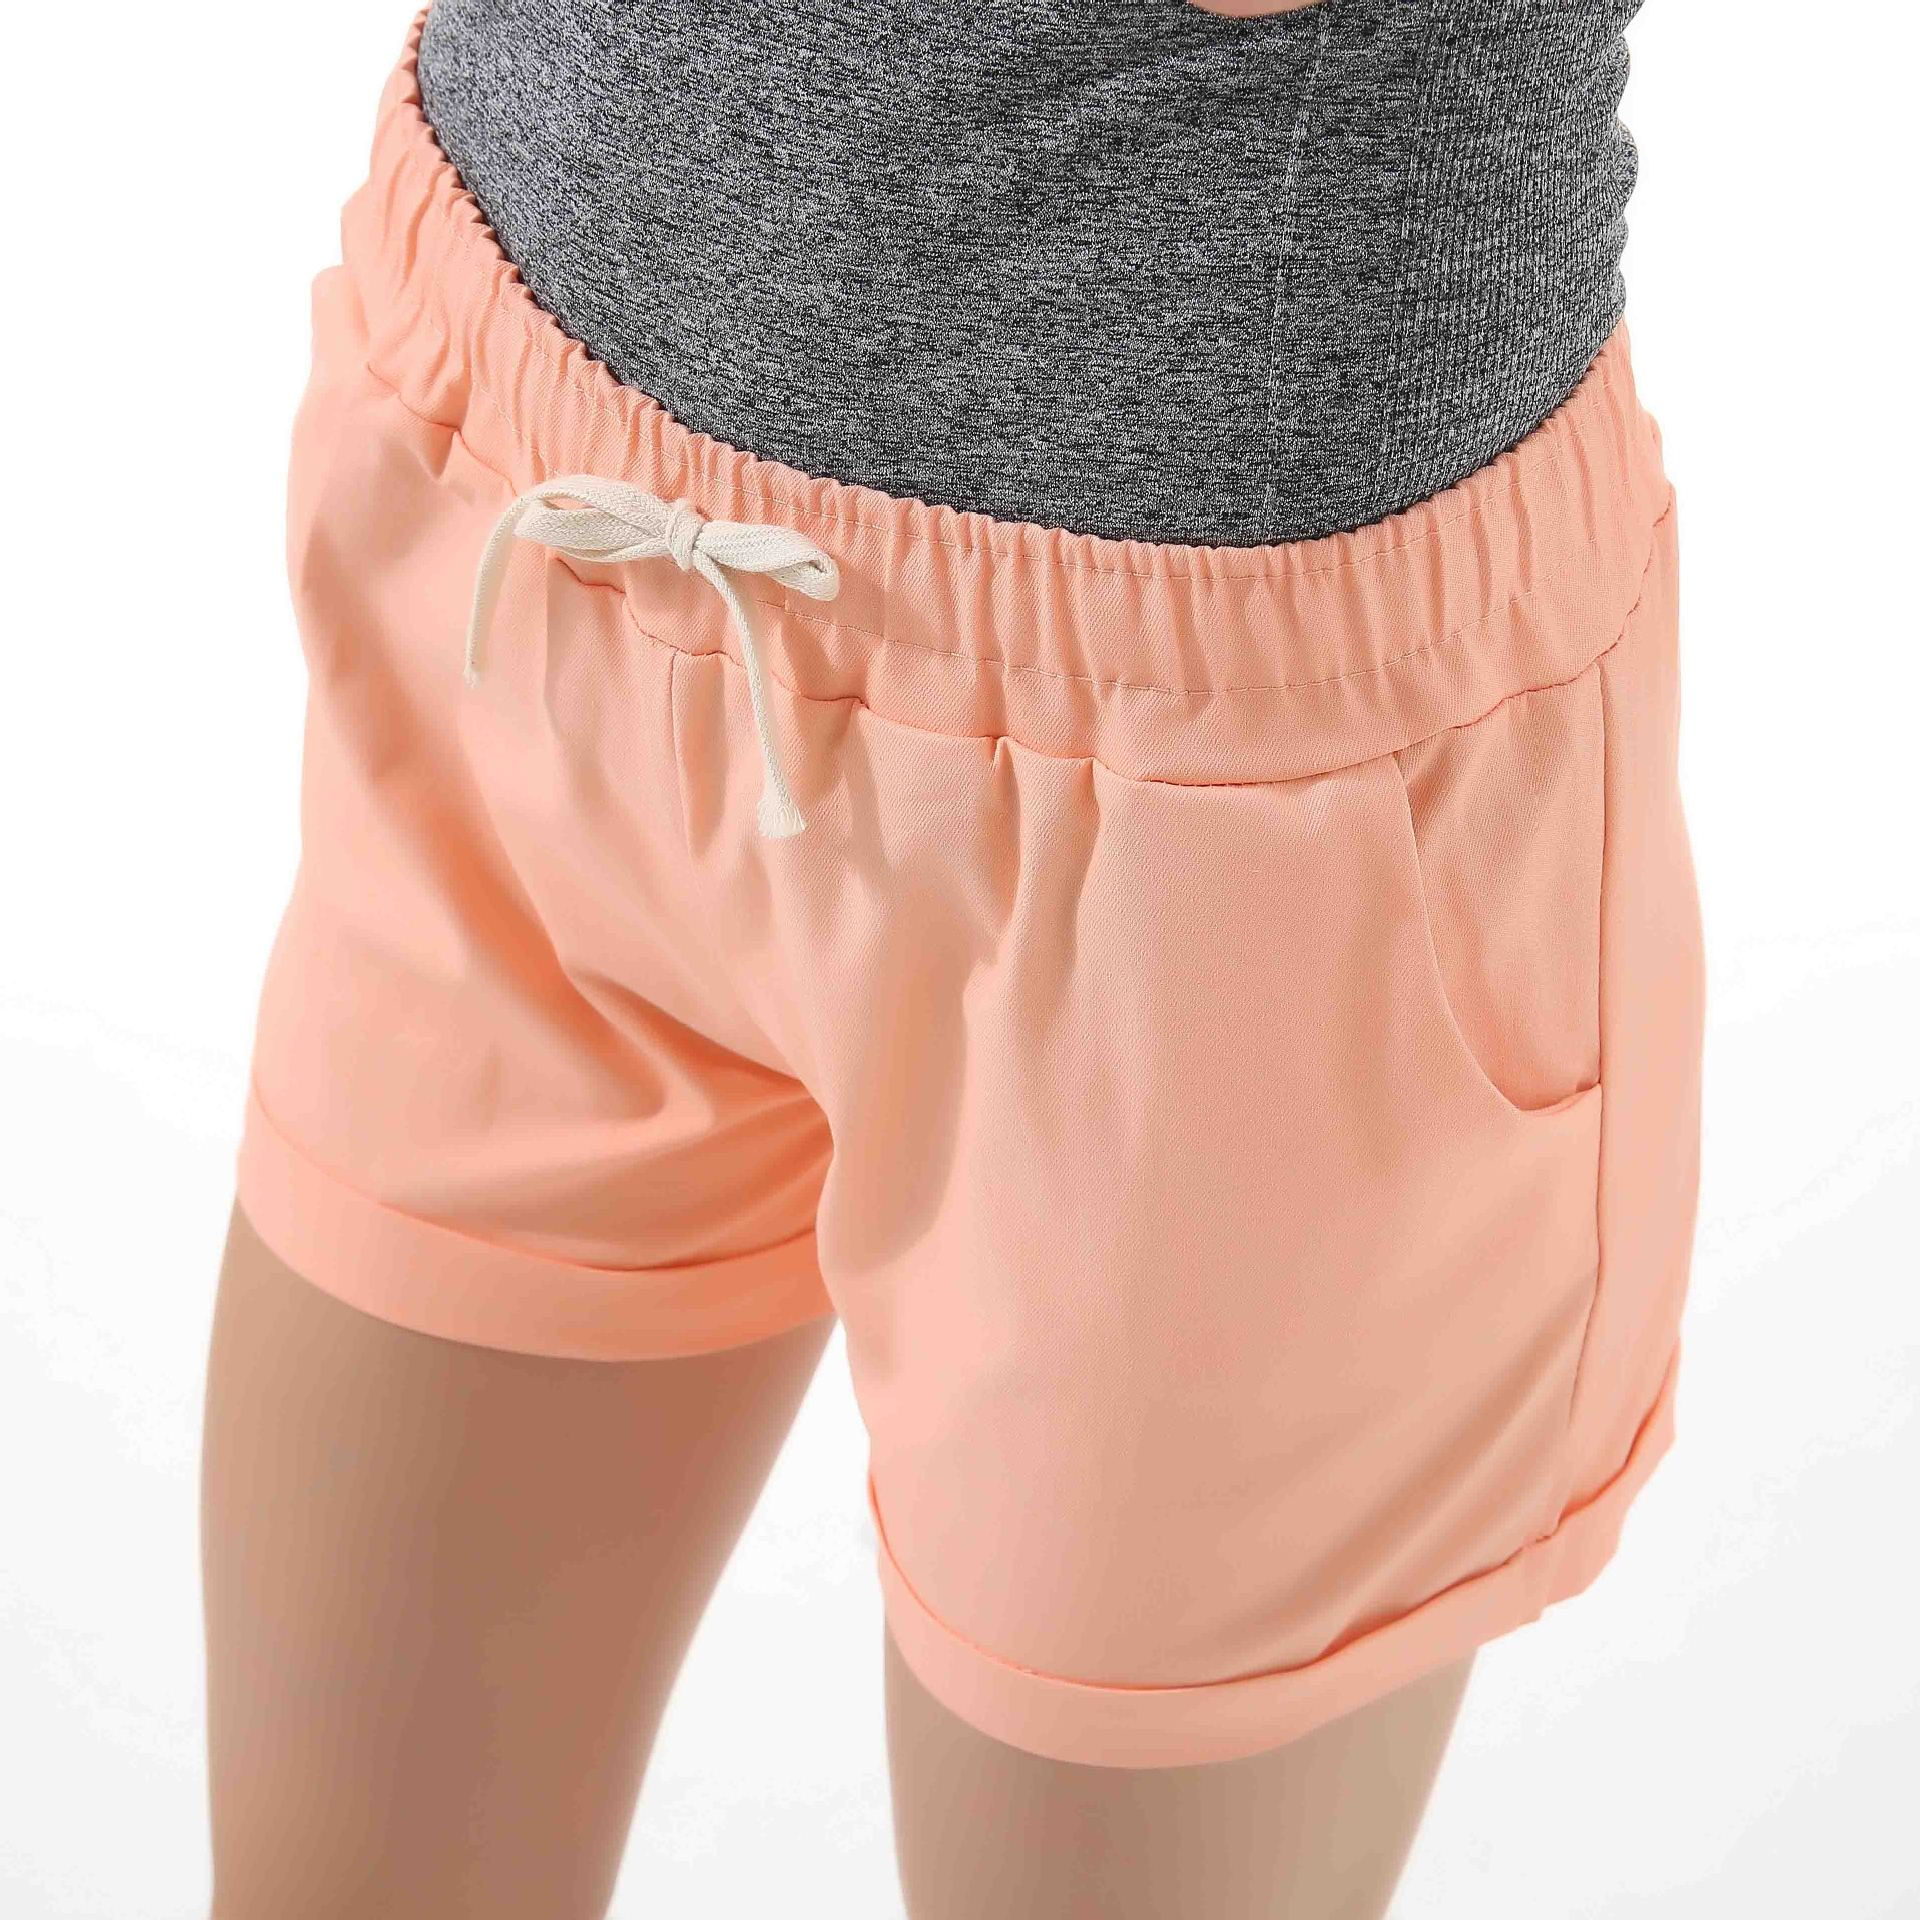 Danjeaner Summer Casual Loose Solid Cotton Shorts Women Fashion Lace Up Sport Shorts High Waist Wide Leg Shorts With Pockets